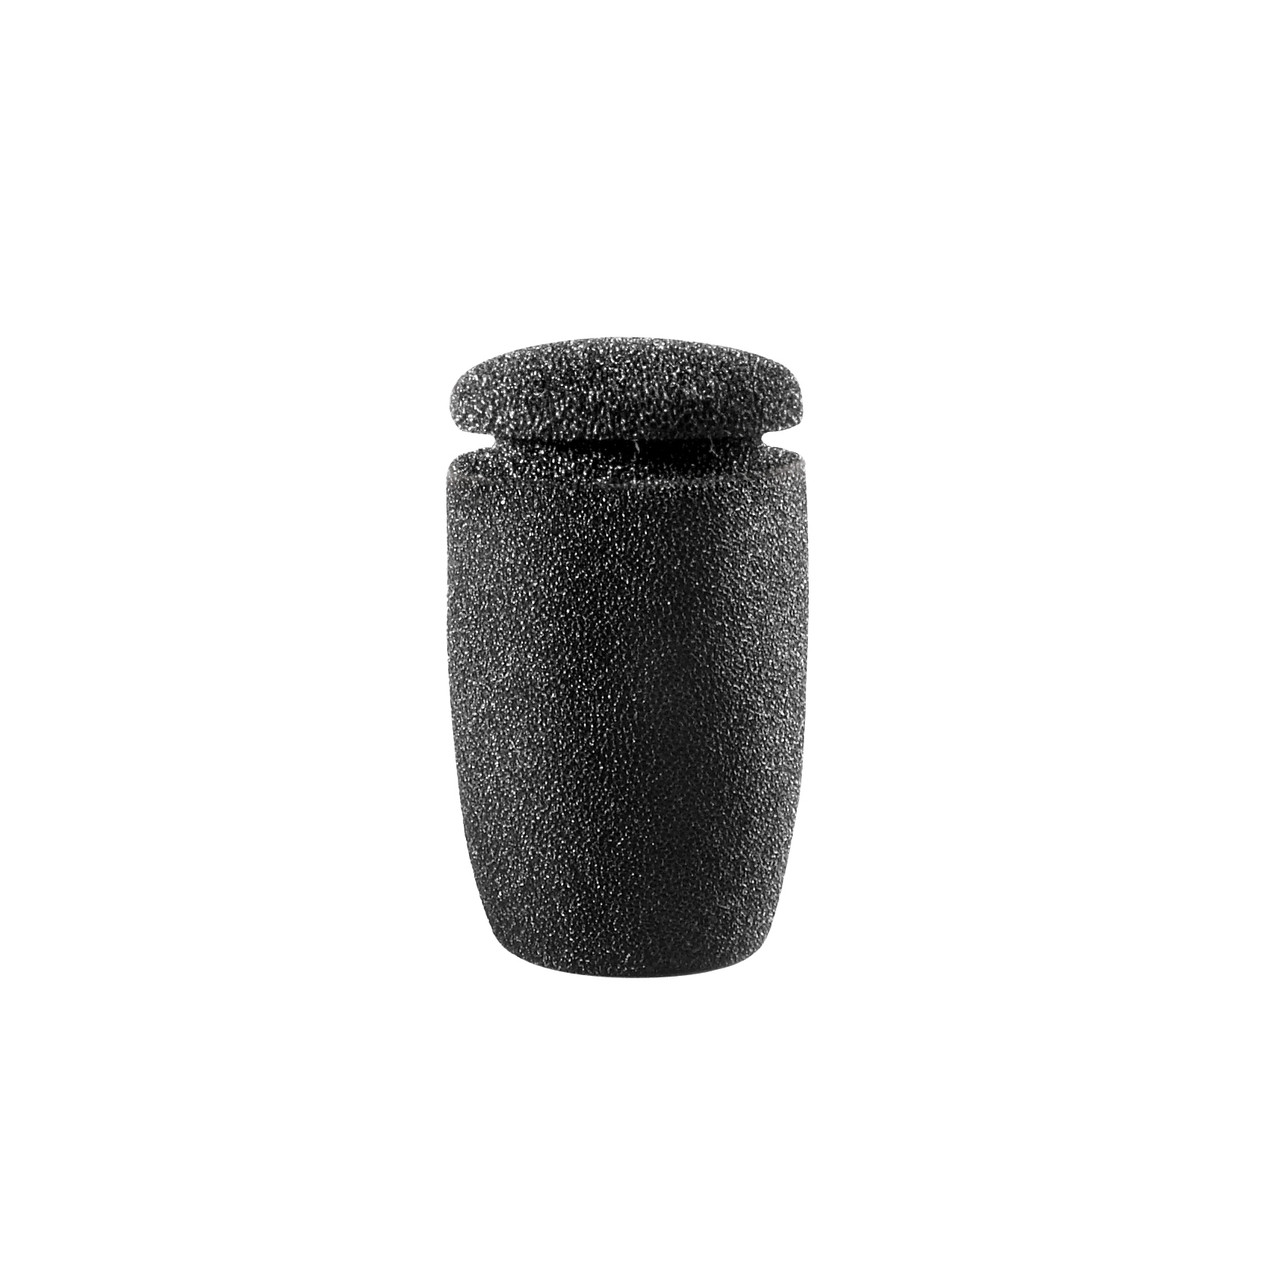 Audio-Technica AT8153 two-stage microphone windscreen